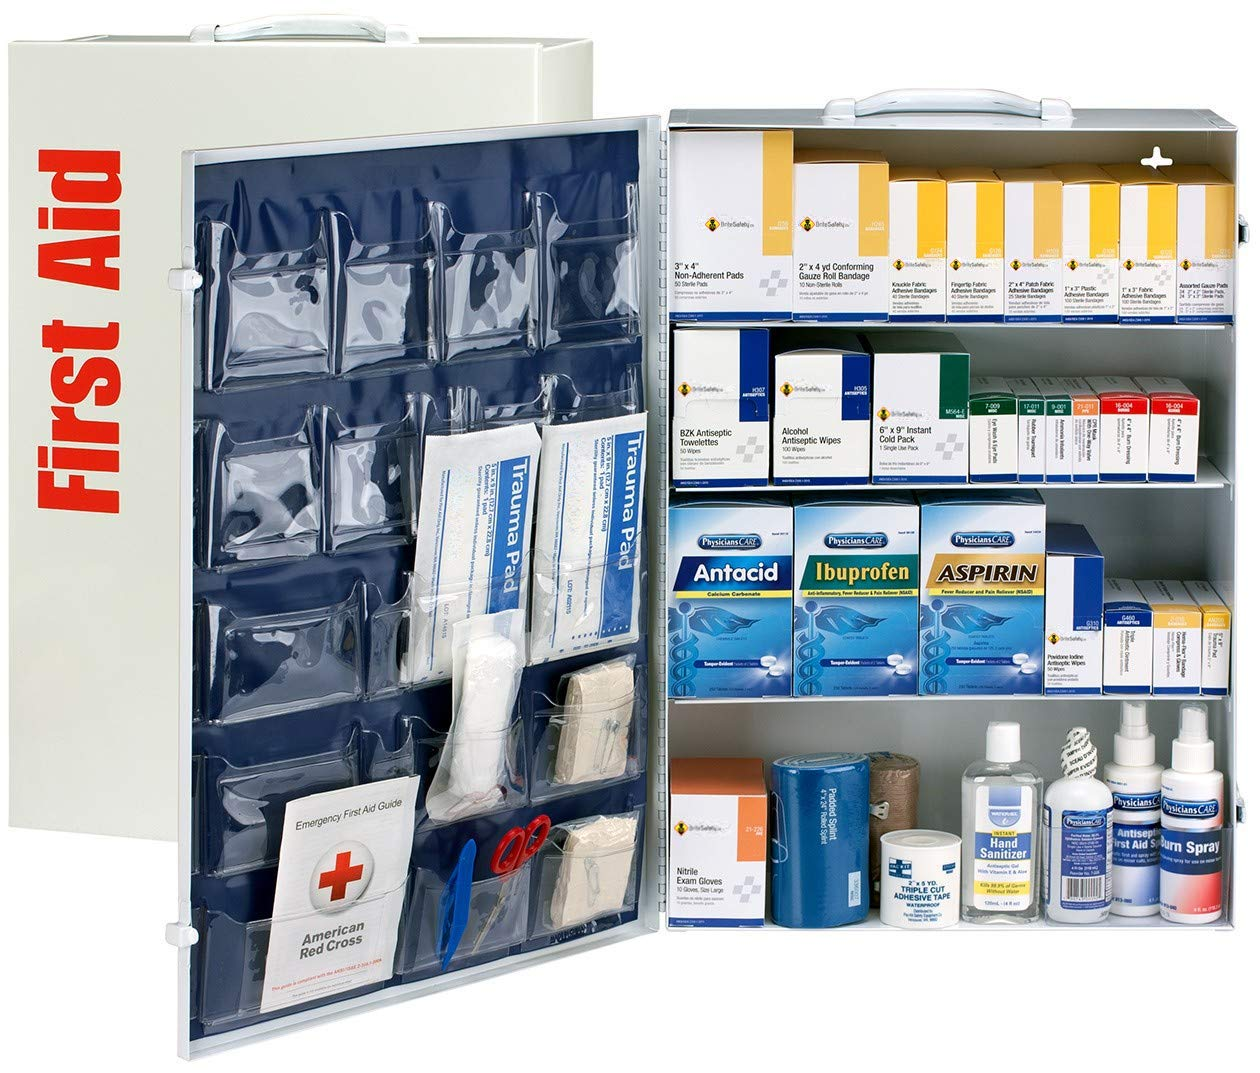 150 Person 4 Shelf First Aid Metal Cabinet, ANSI B+, Type I & II with Medication - OSHA Compliant 2018 Trauma Kit First Aid Kit for Businesses Emergency Kit